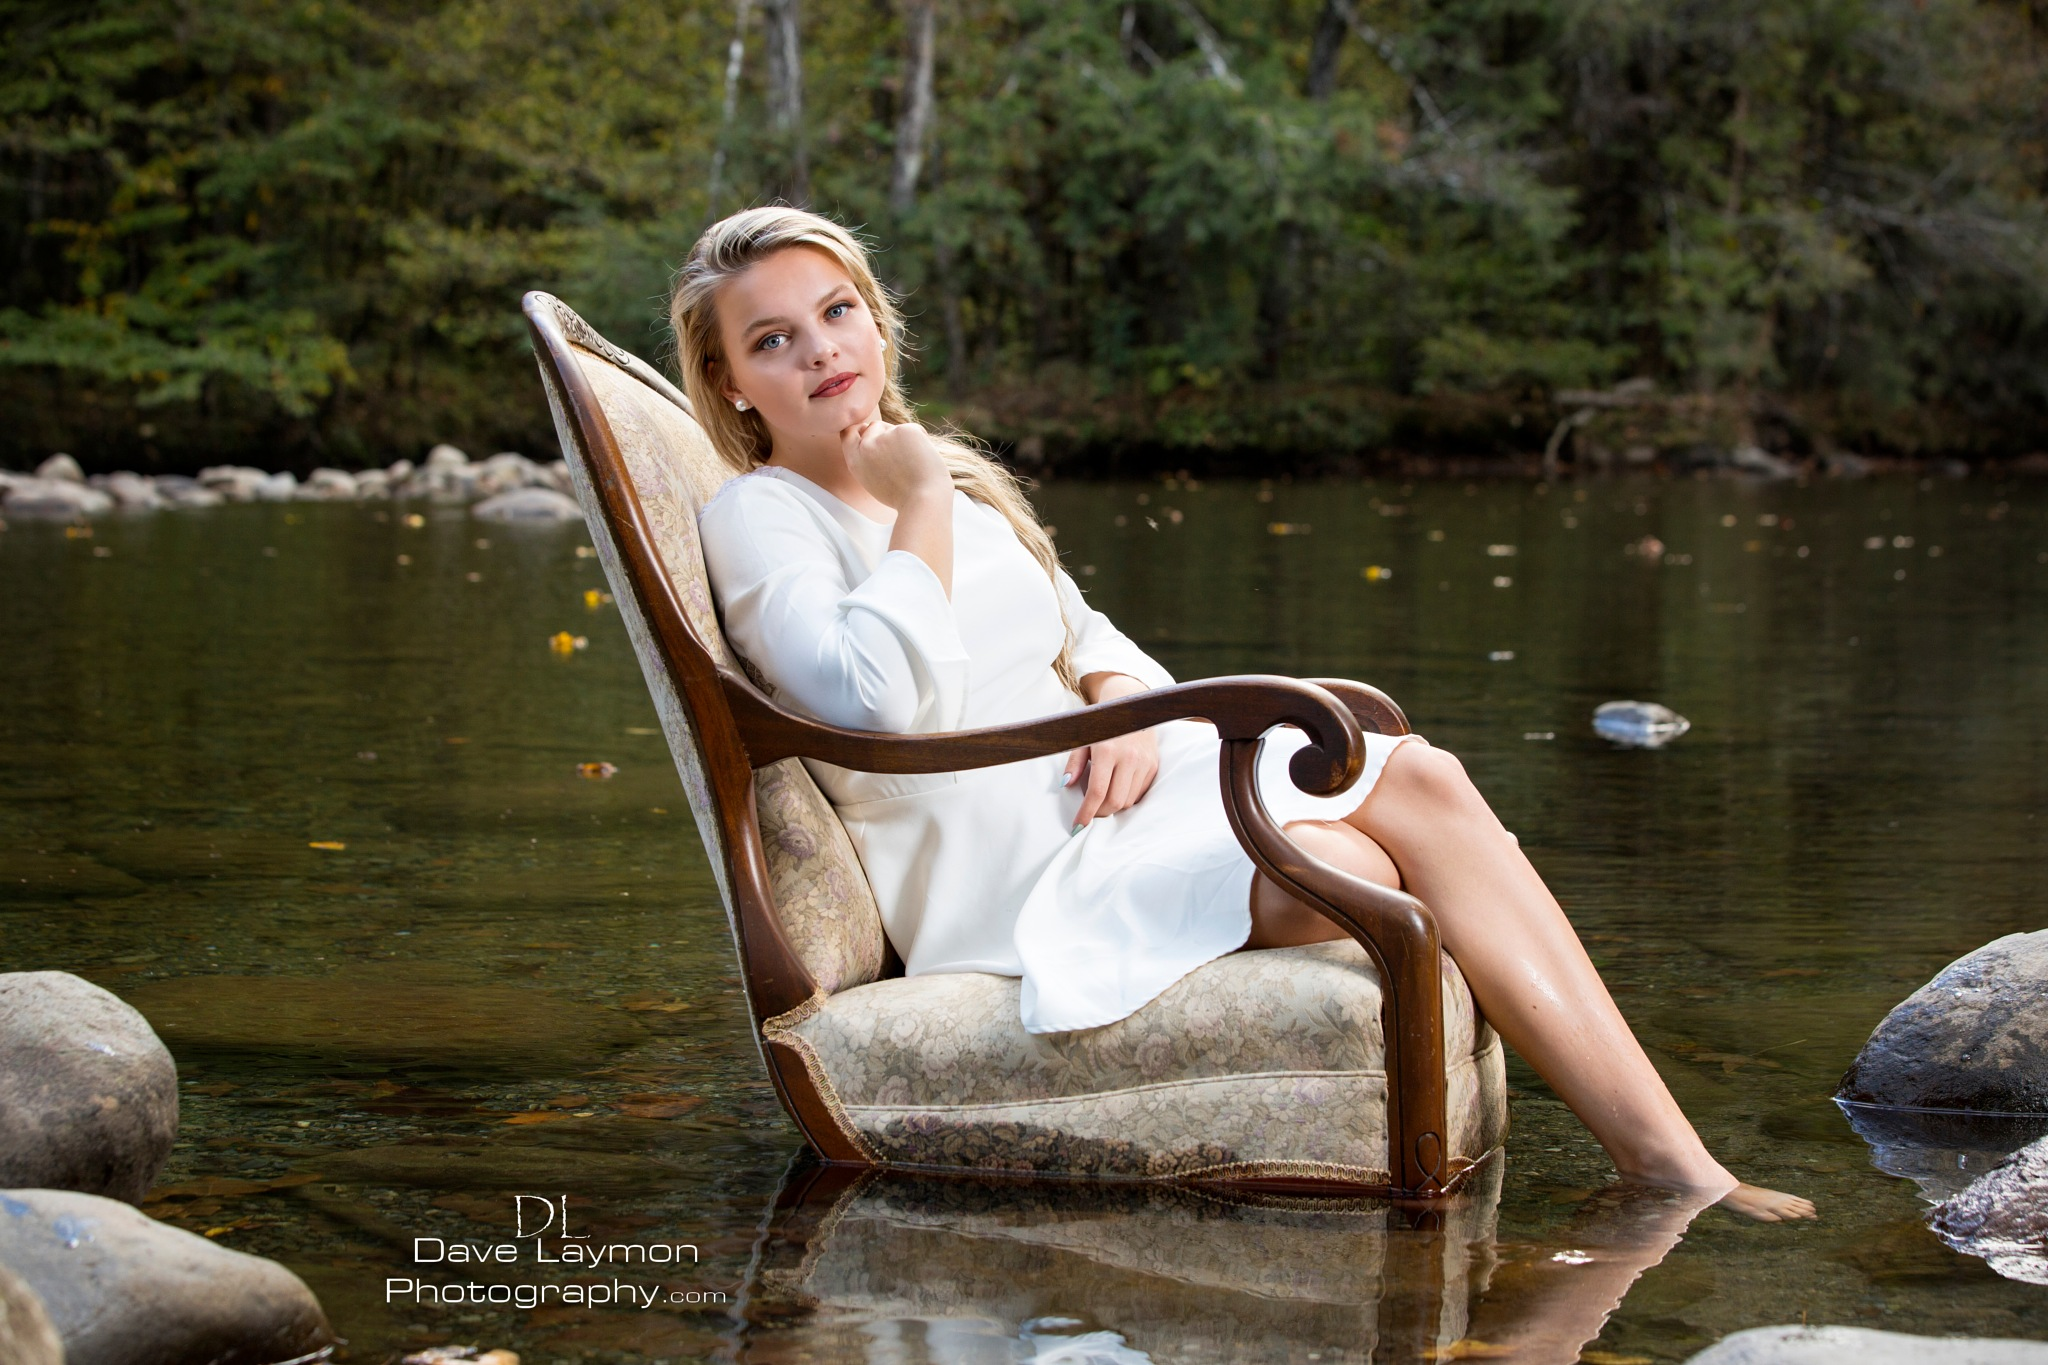 Chair in the creek by Dave Laymon